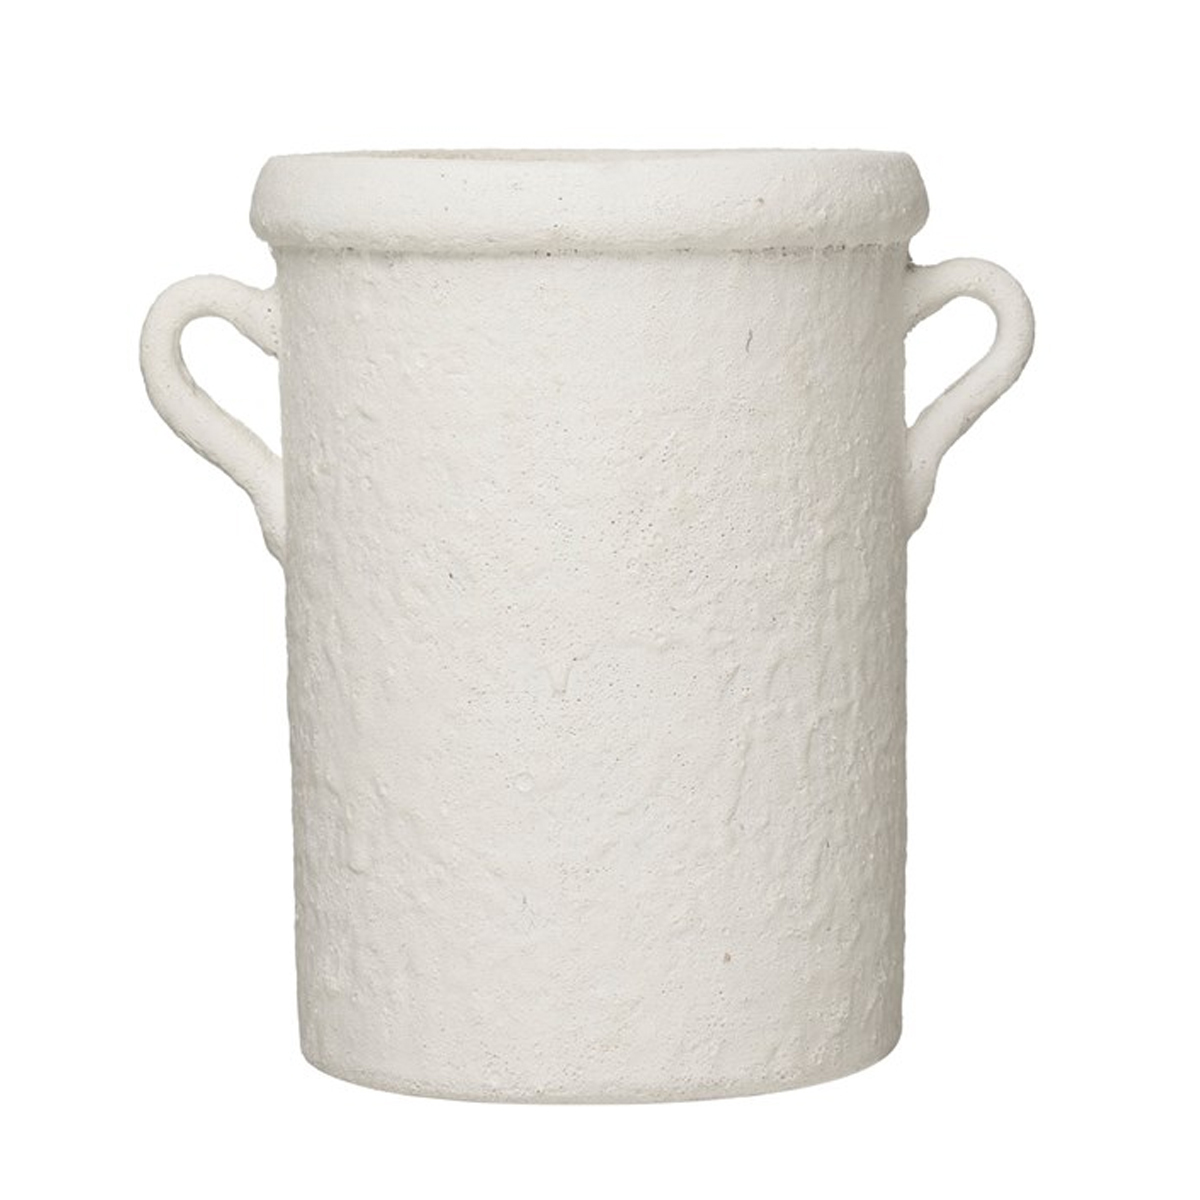 Picture of TERRA-COTTA CROCK WITH HANDLE IN WHITE